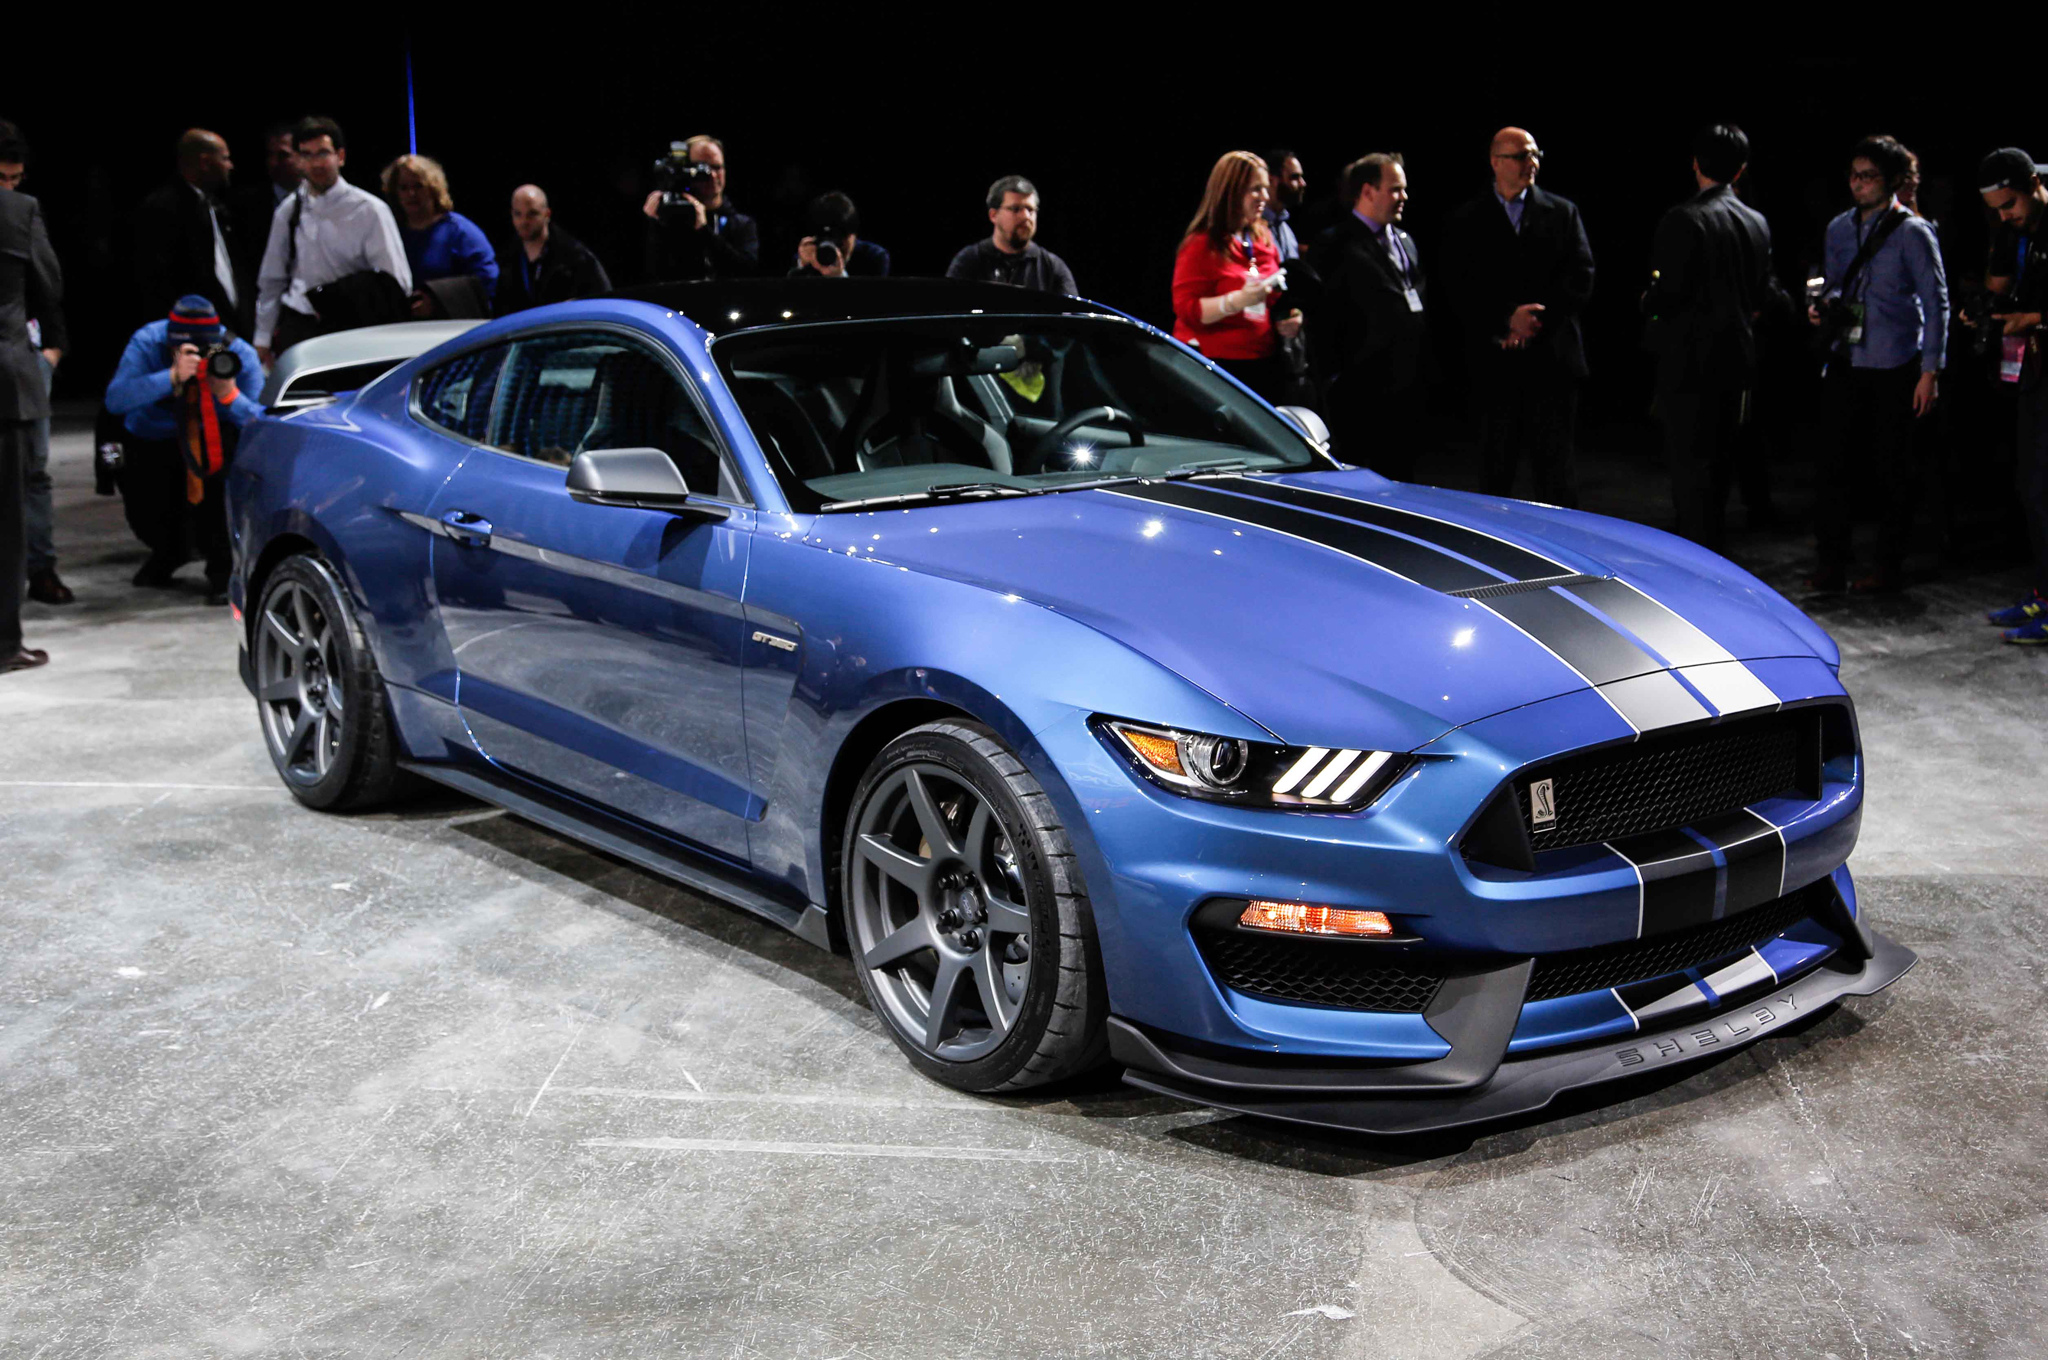 Ford shelby gt350r mustang blasts detroit with 500 plus hp carbon fiber wheels